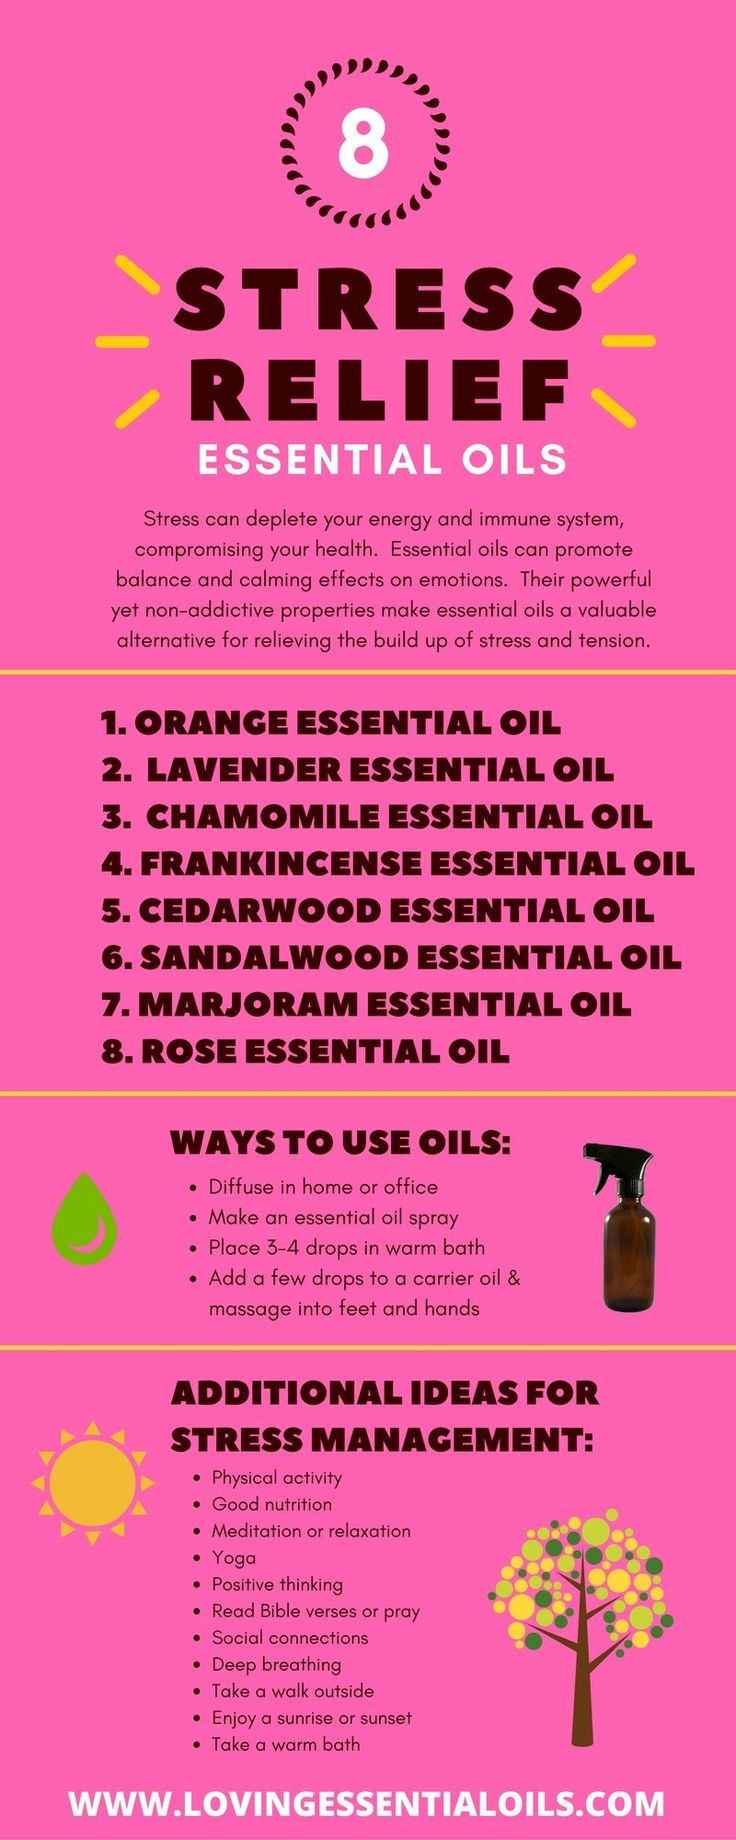 8 Stress Relief Essential Oils Infographic http://www.lovingessentialoils.com/blogs/essential-oil-tips/top-8-stress-relief-essential-oils  Emotional and mental stress can be especially damaging to your body's immune system, leading to diseases. Learn about the top 8 Stress Relief Essential Oils.